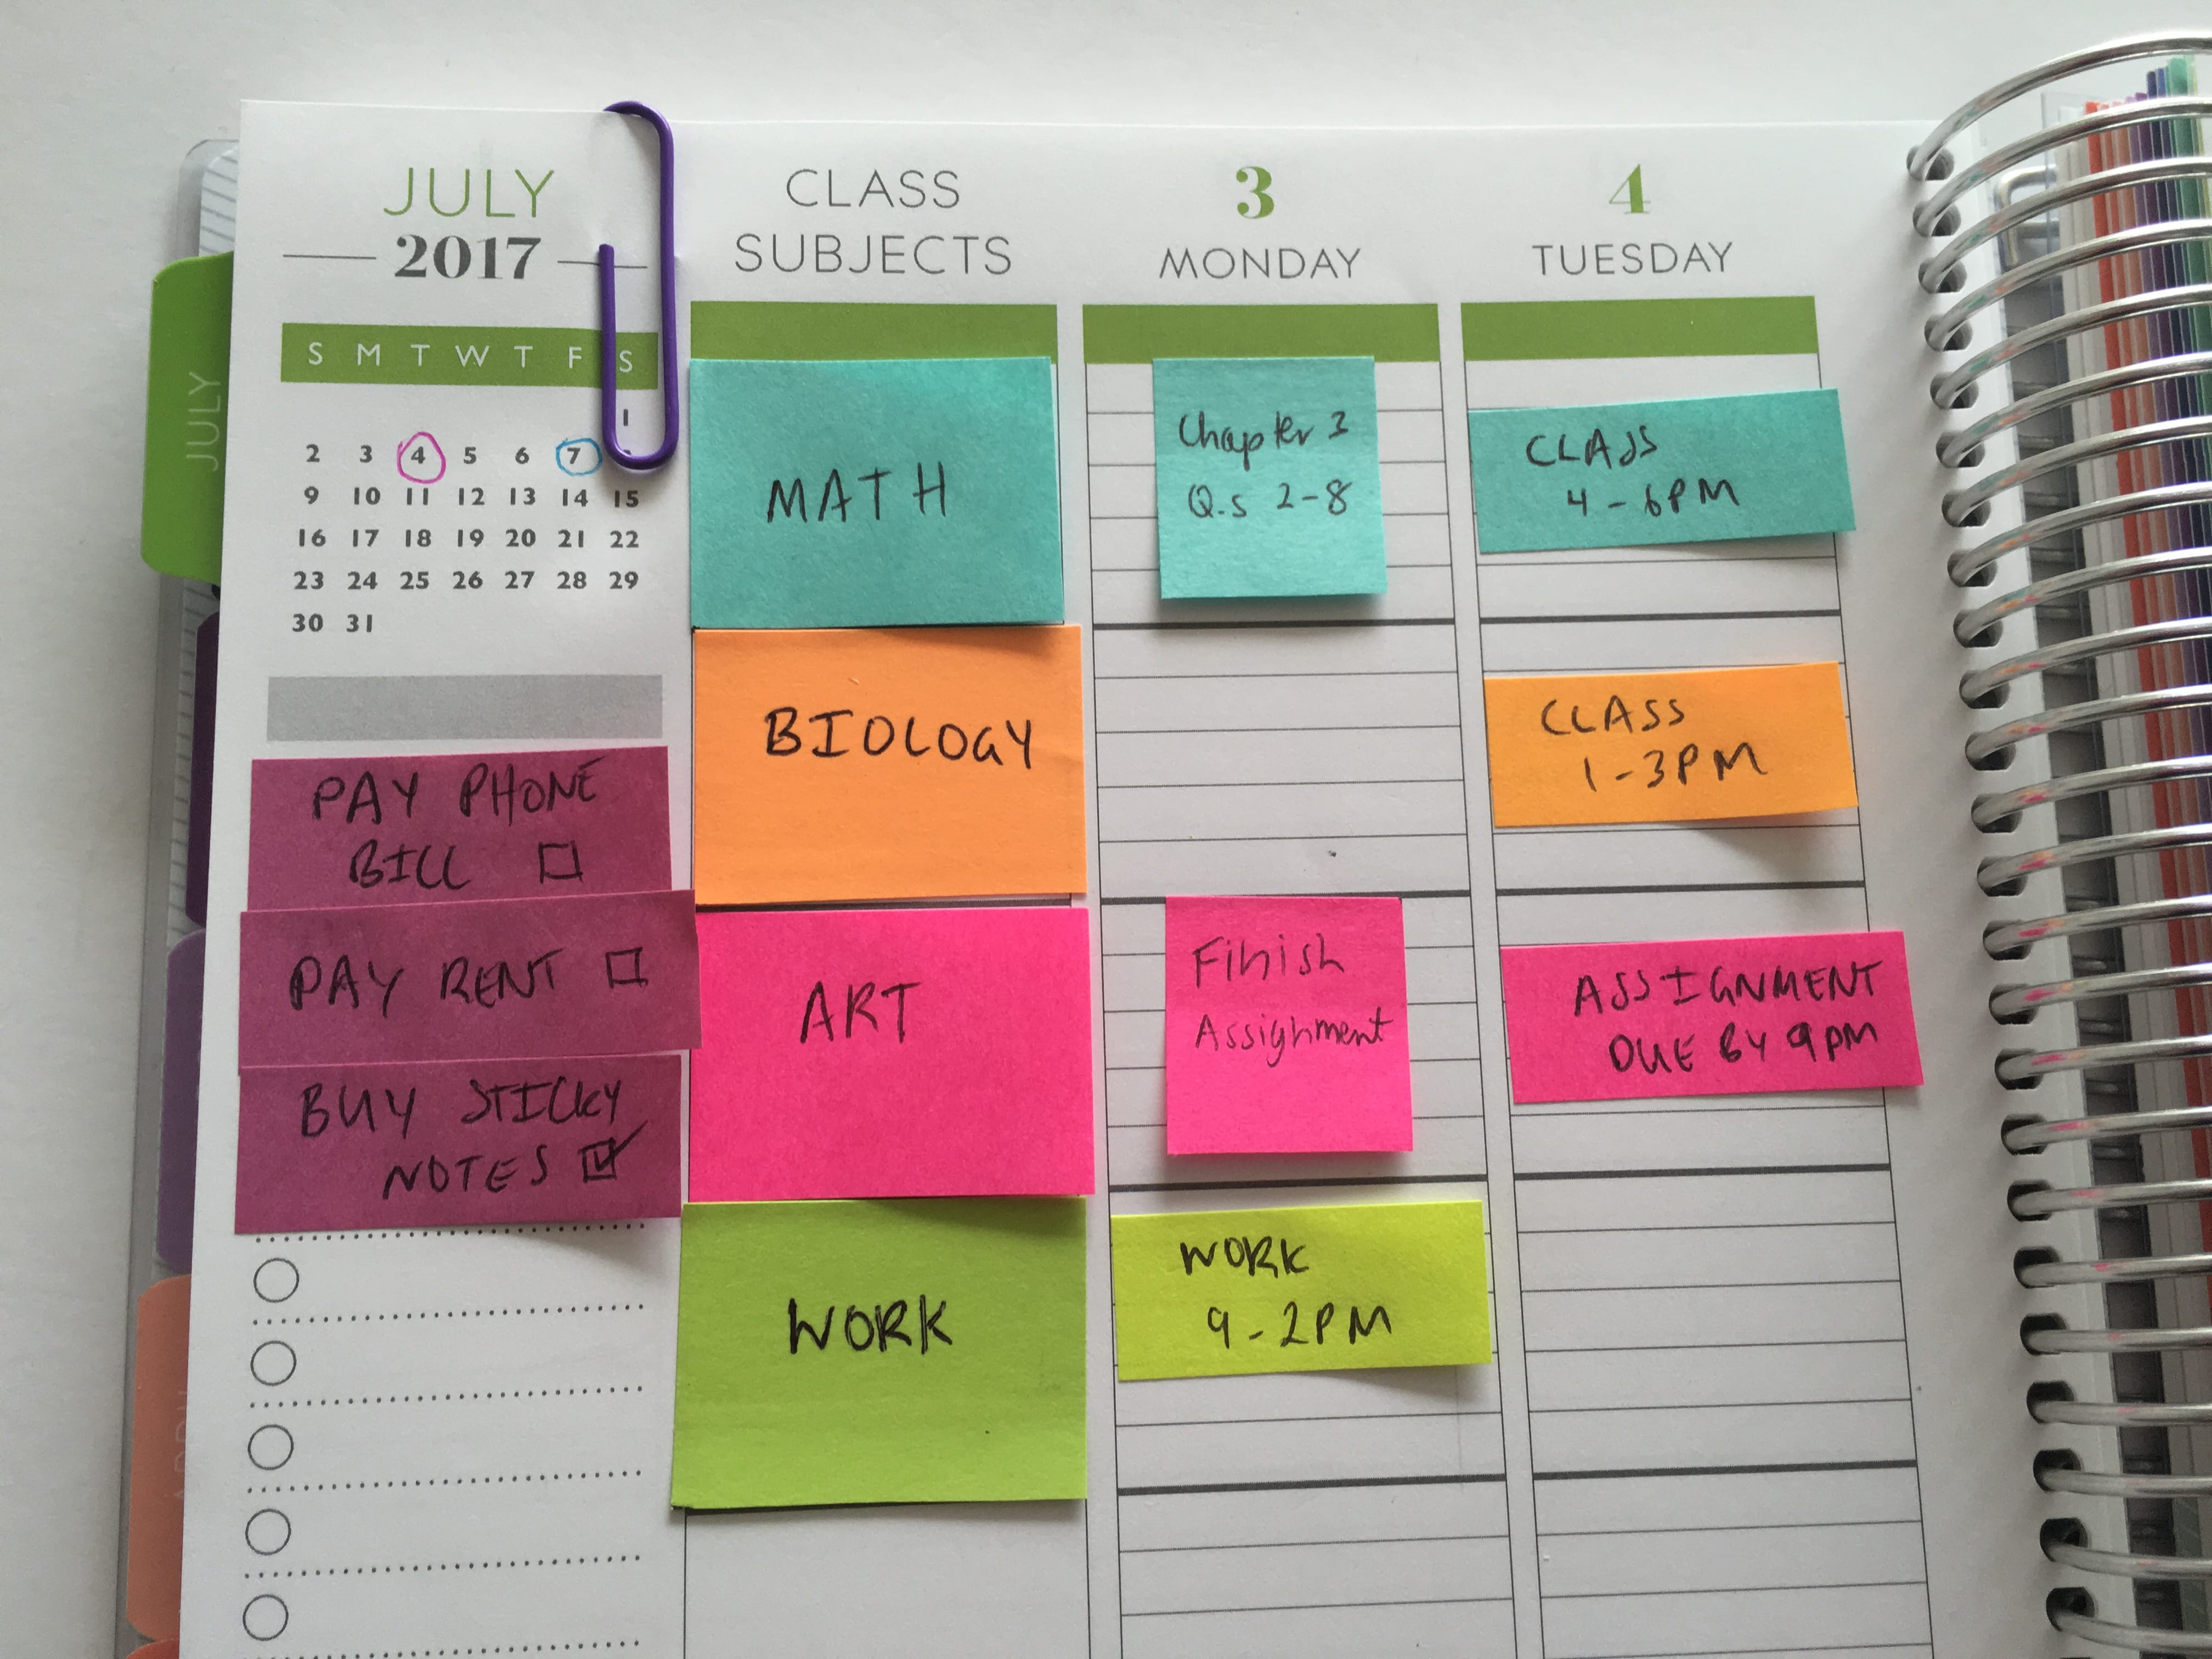 make sure youve subscribed as ill be sharing a post soon on how to color code your planner for school using sticky notes